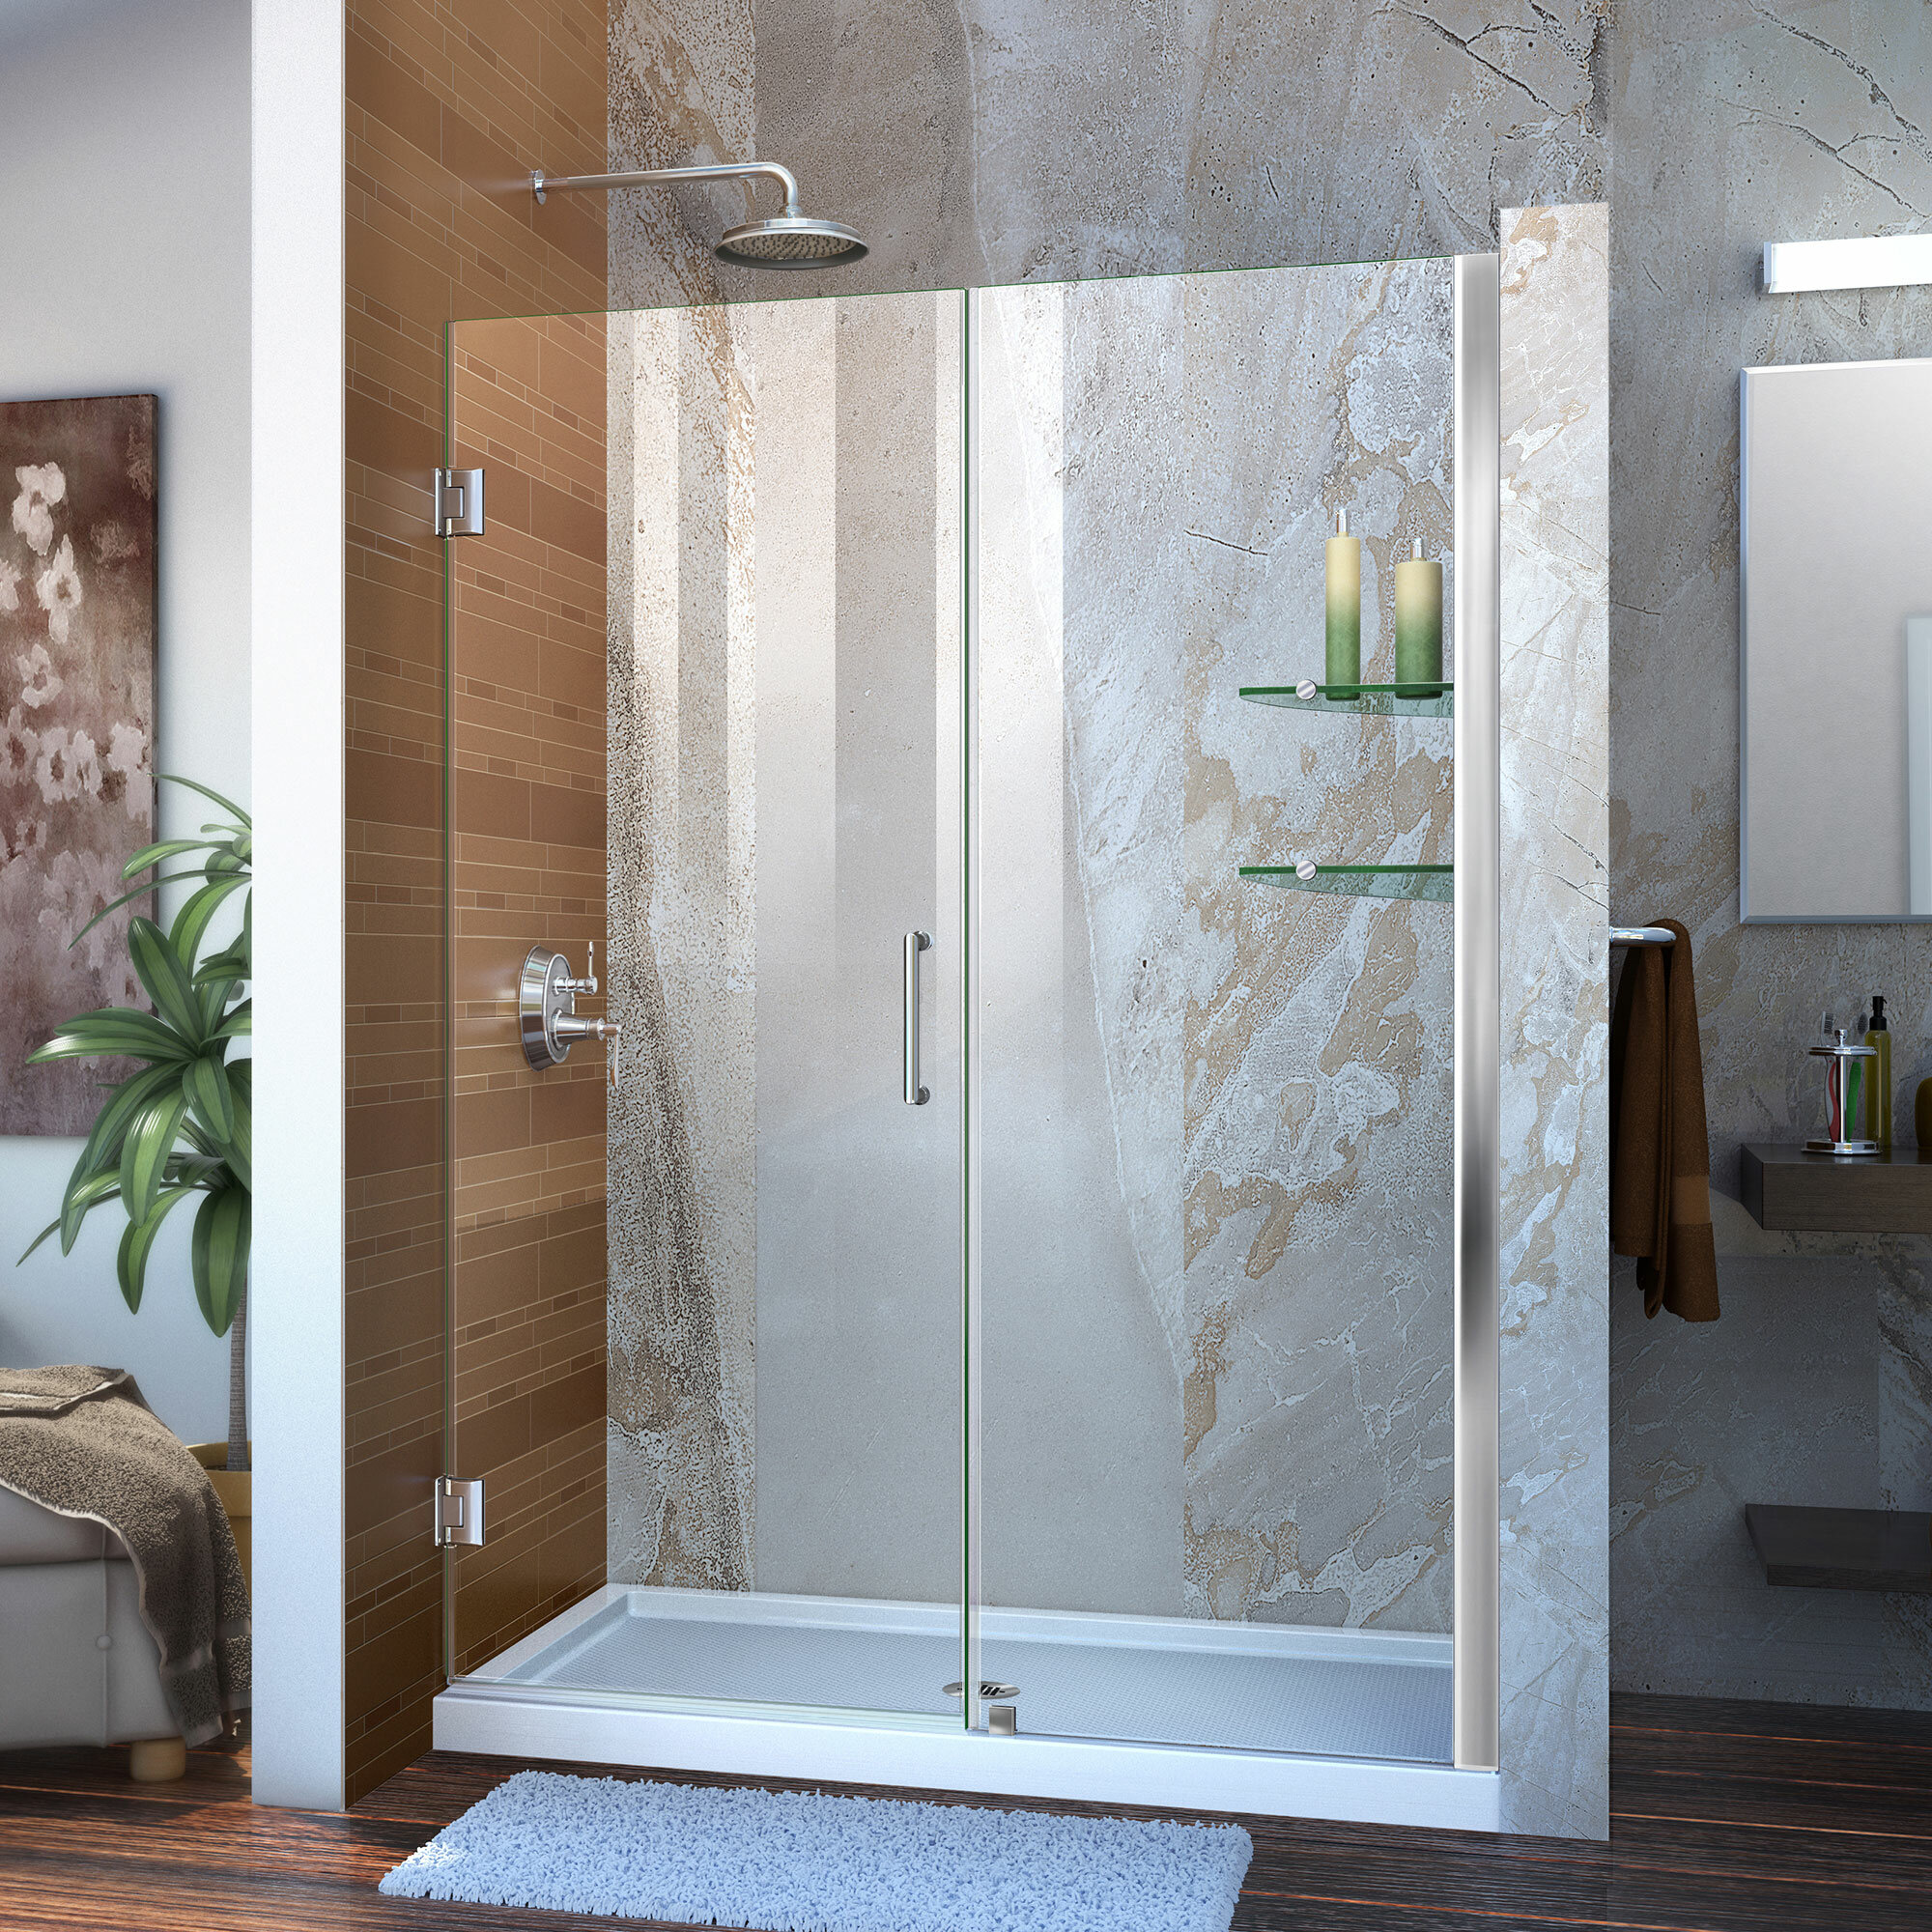 Unidoor 48 X 72 Hinged Frameless Shower Door With Clearmax Technology